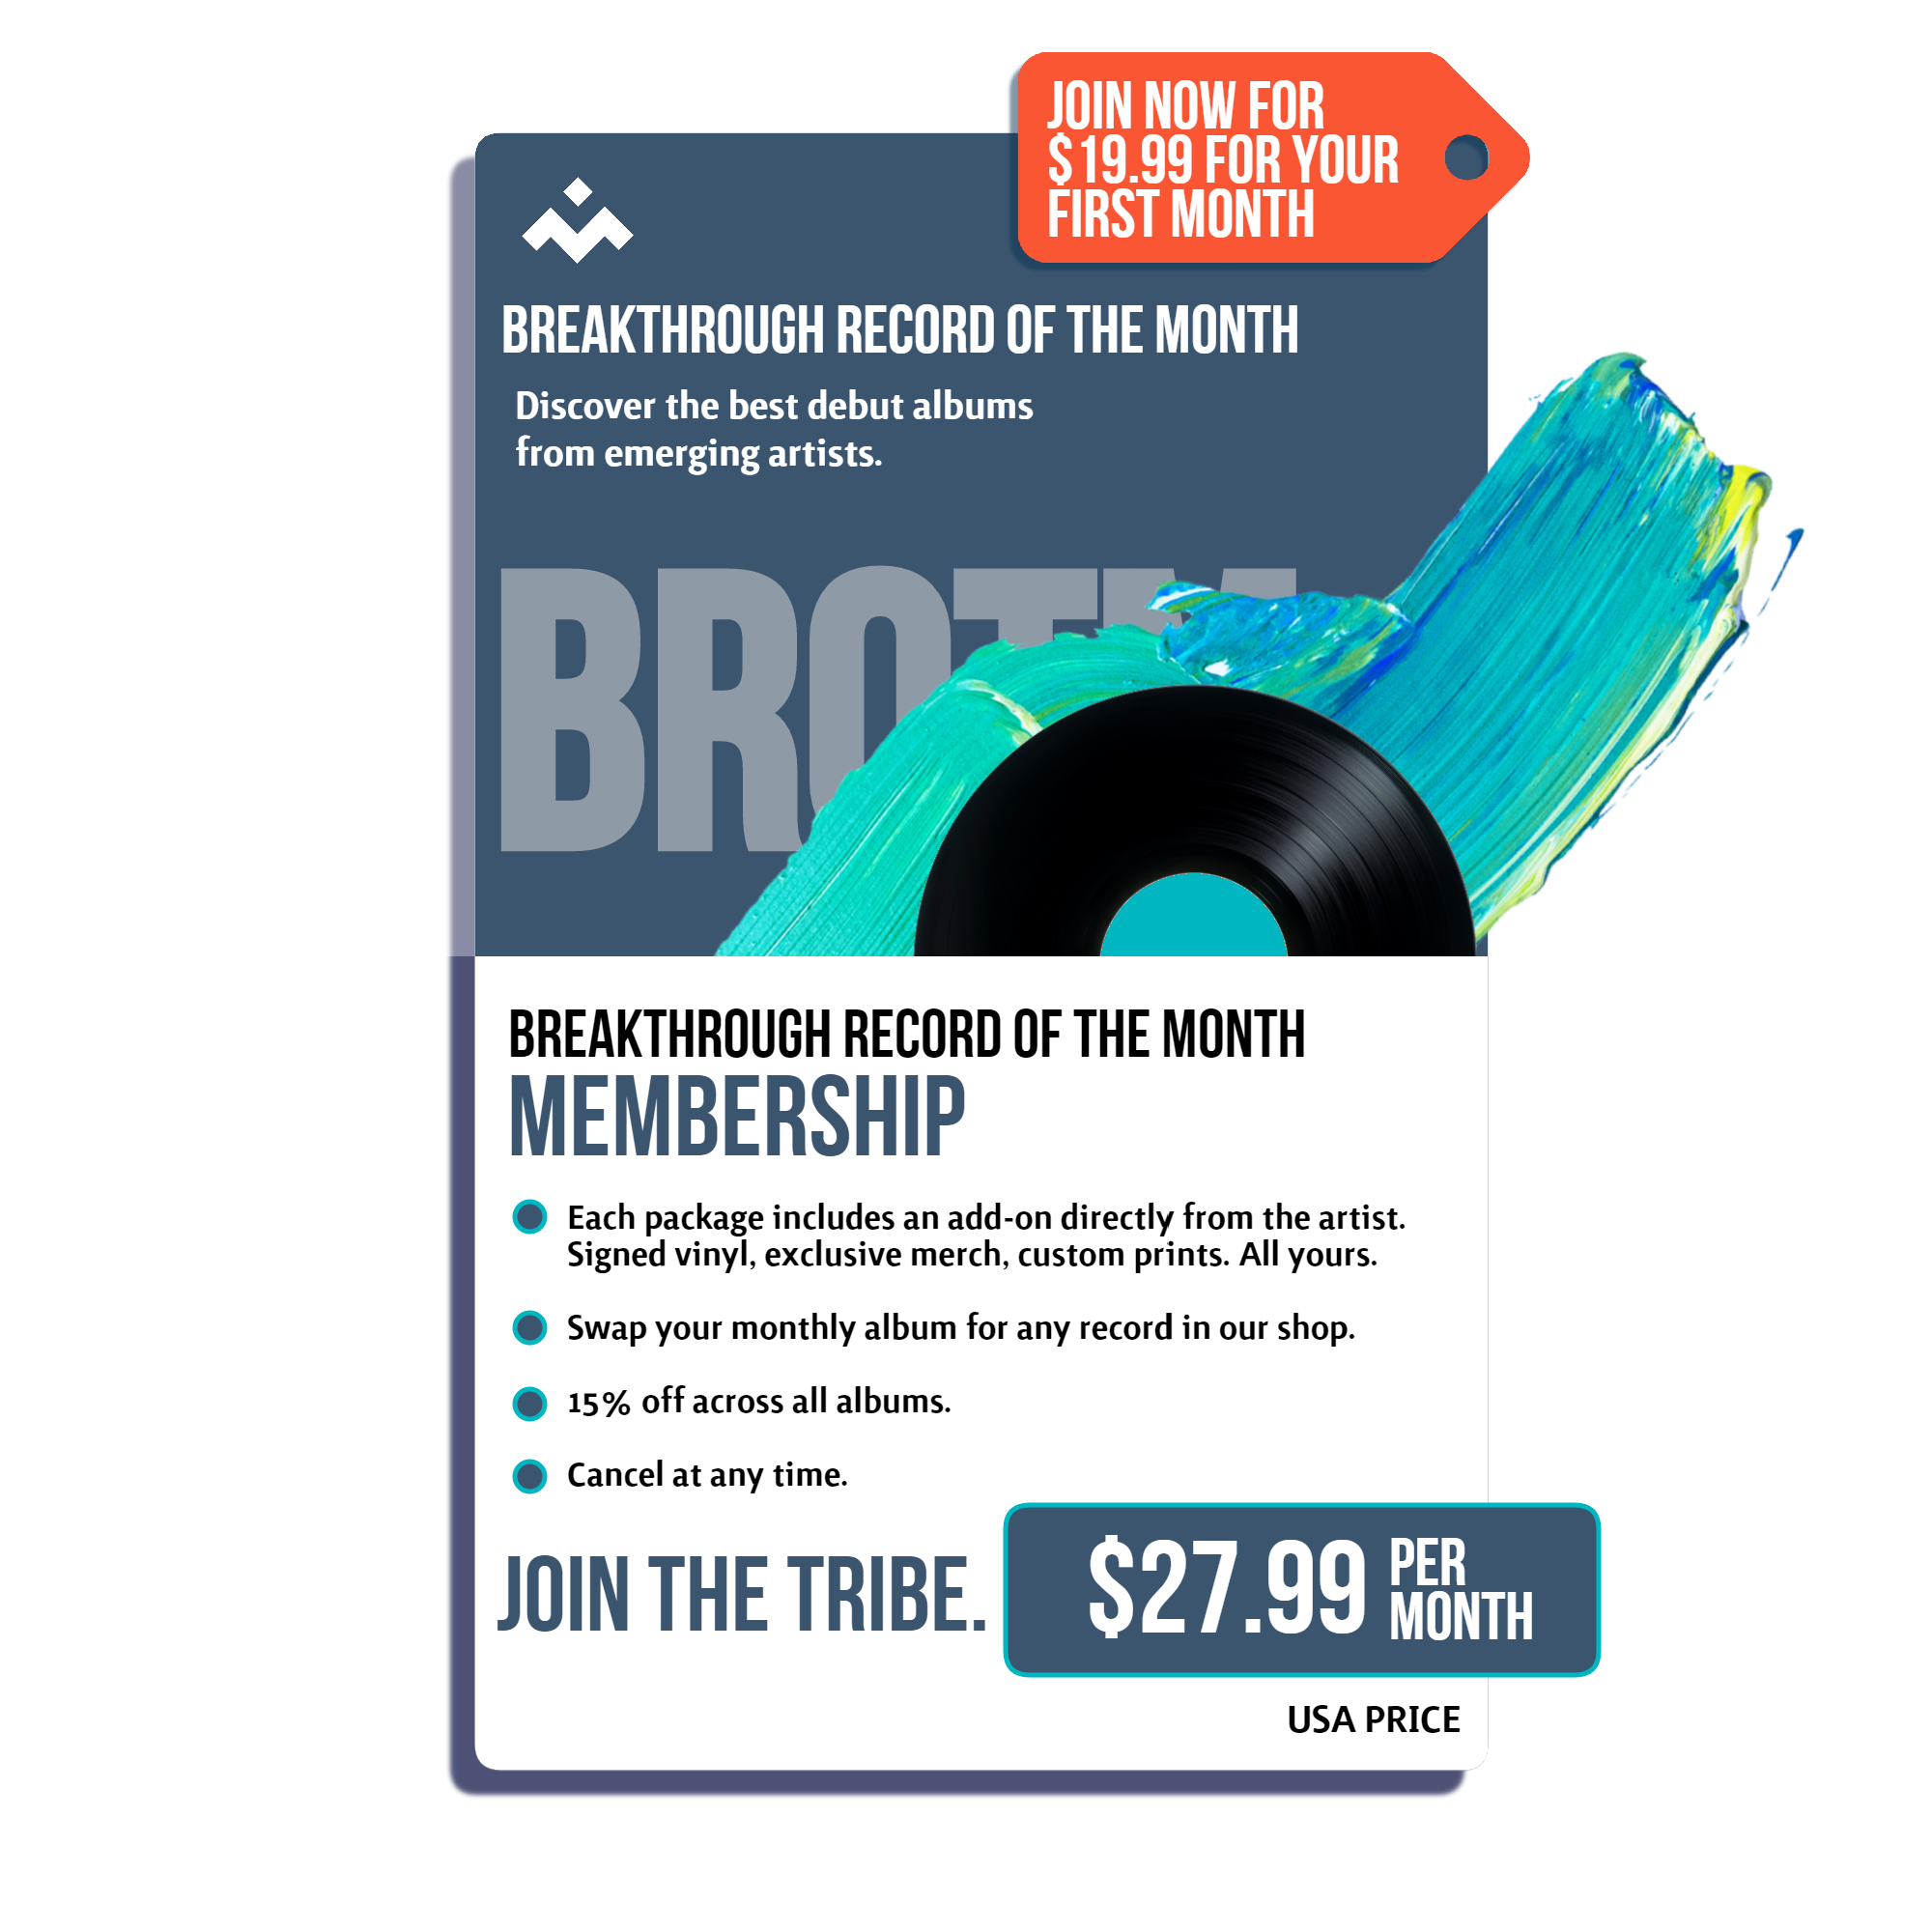 BROTM Memberships